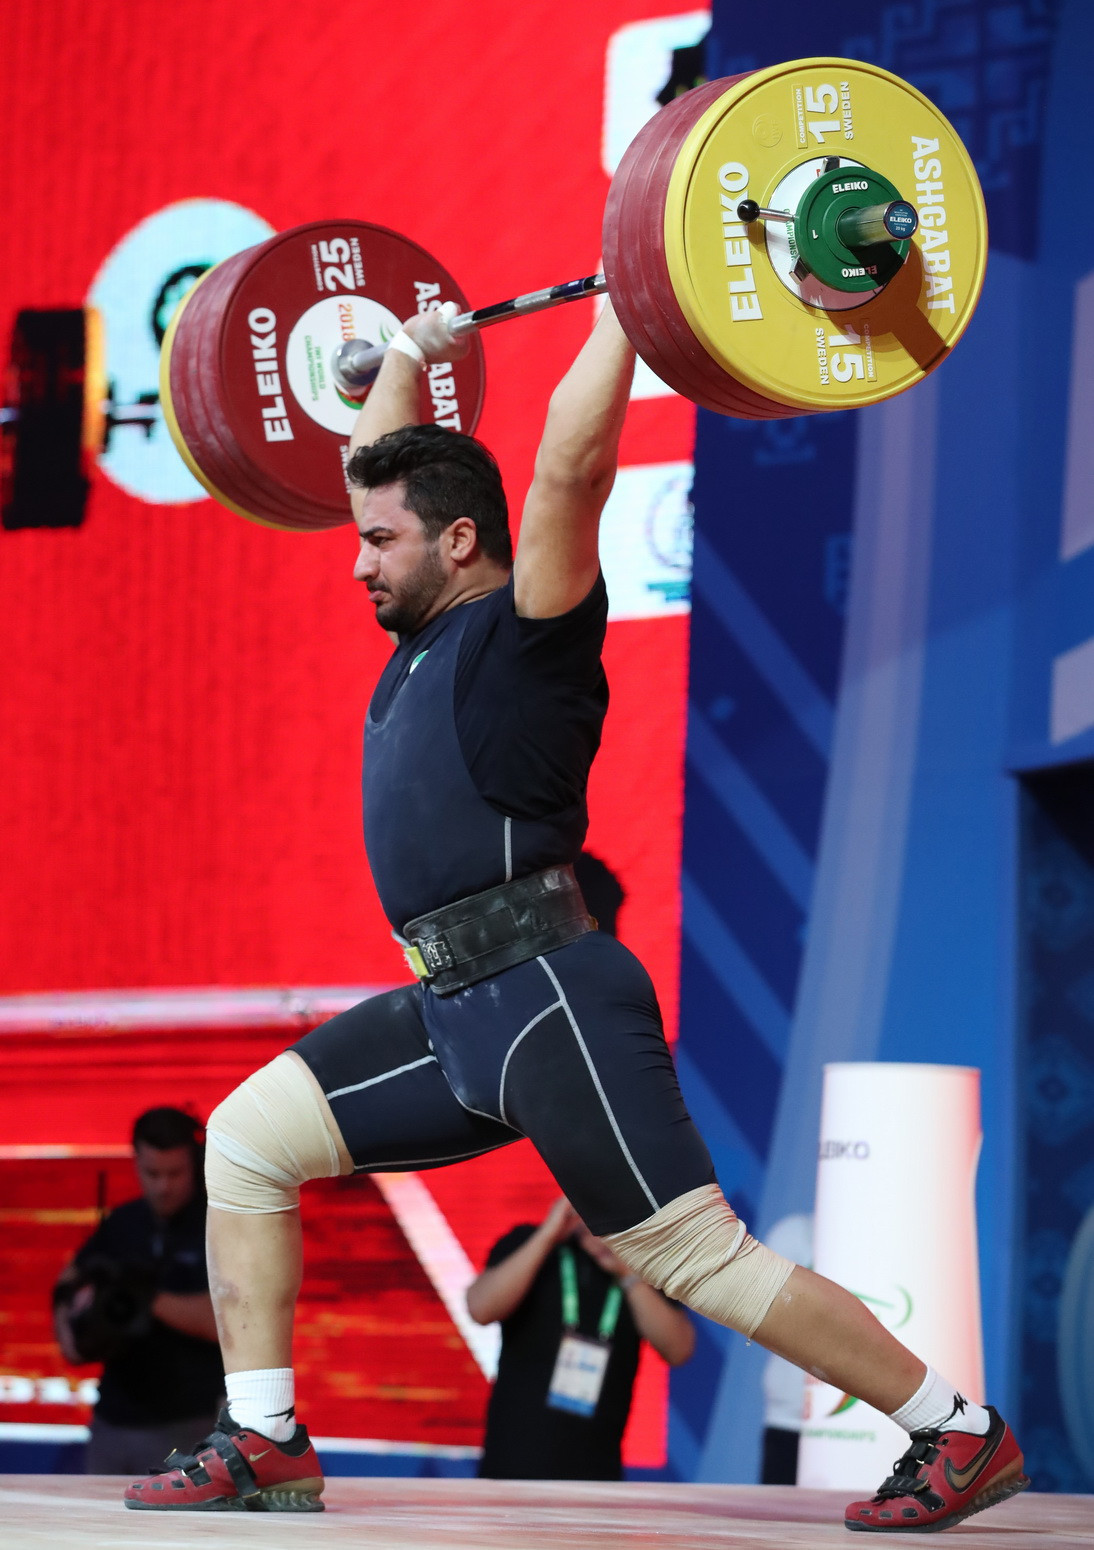 Chumak's total was matched by Hashemi's compatriot Reza Beiralvand, who clinched the bronze medal ©IWF